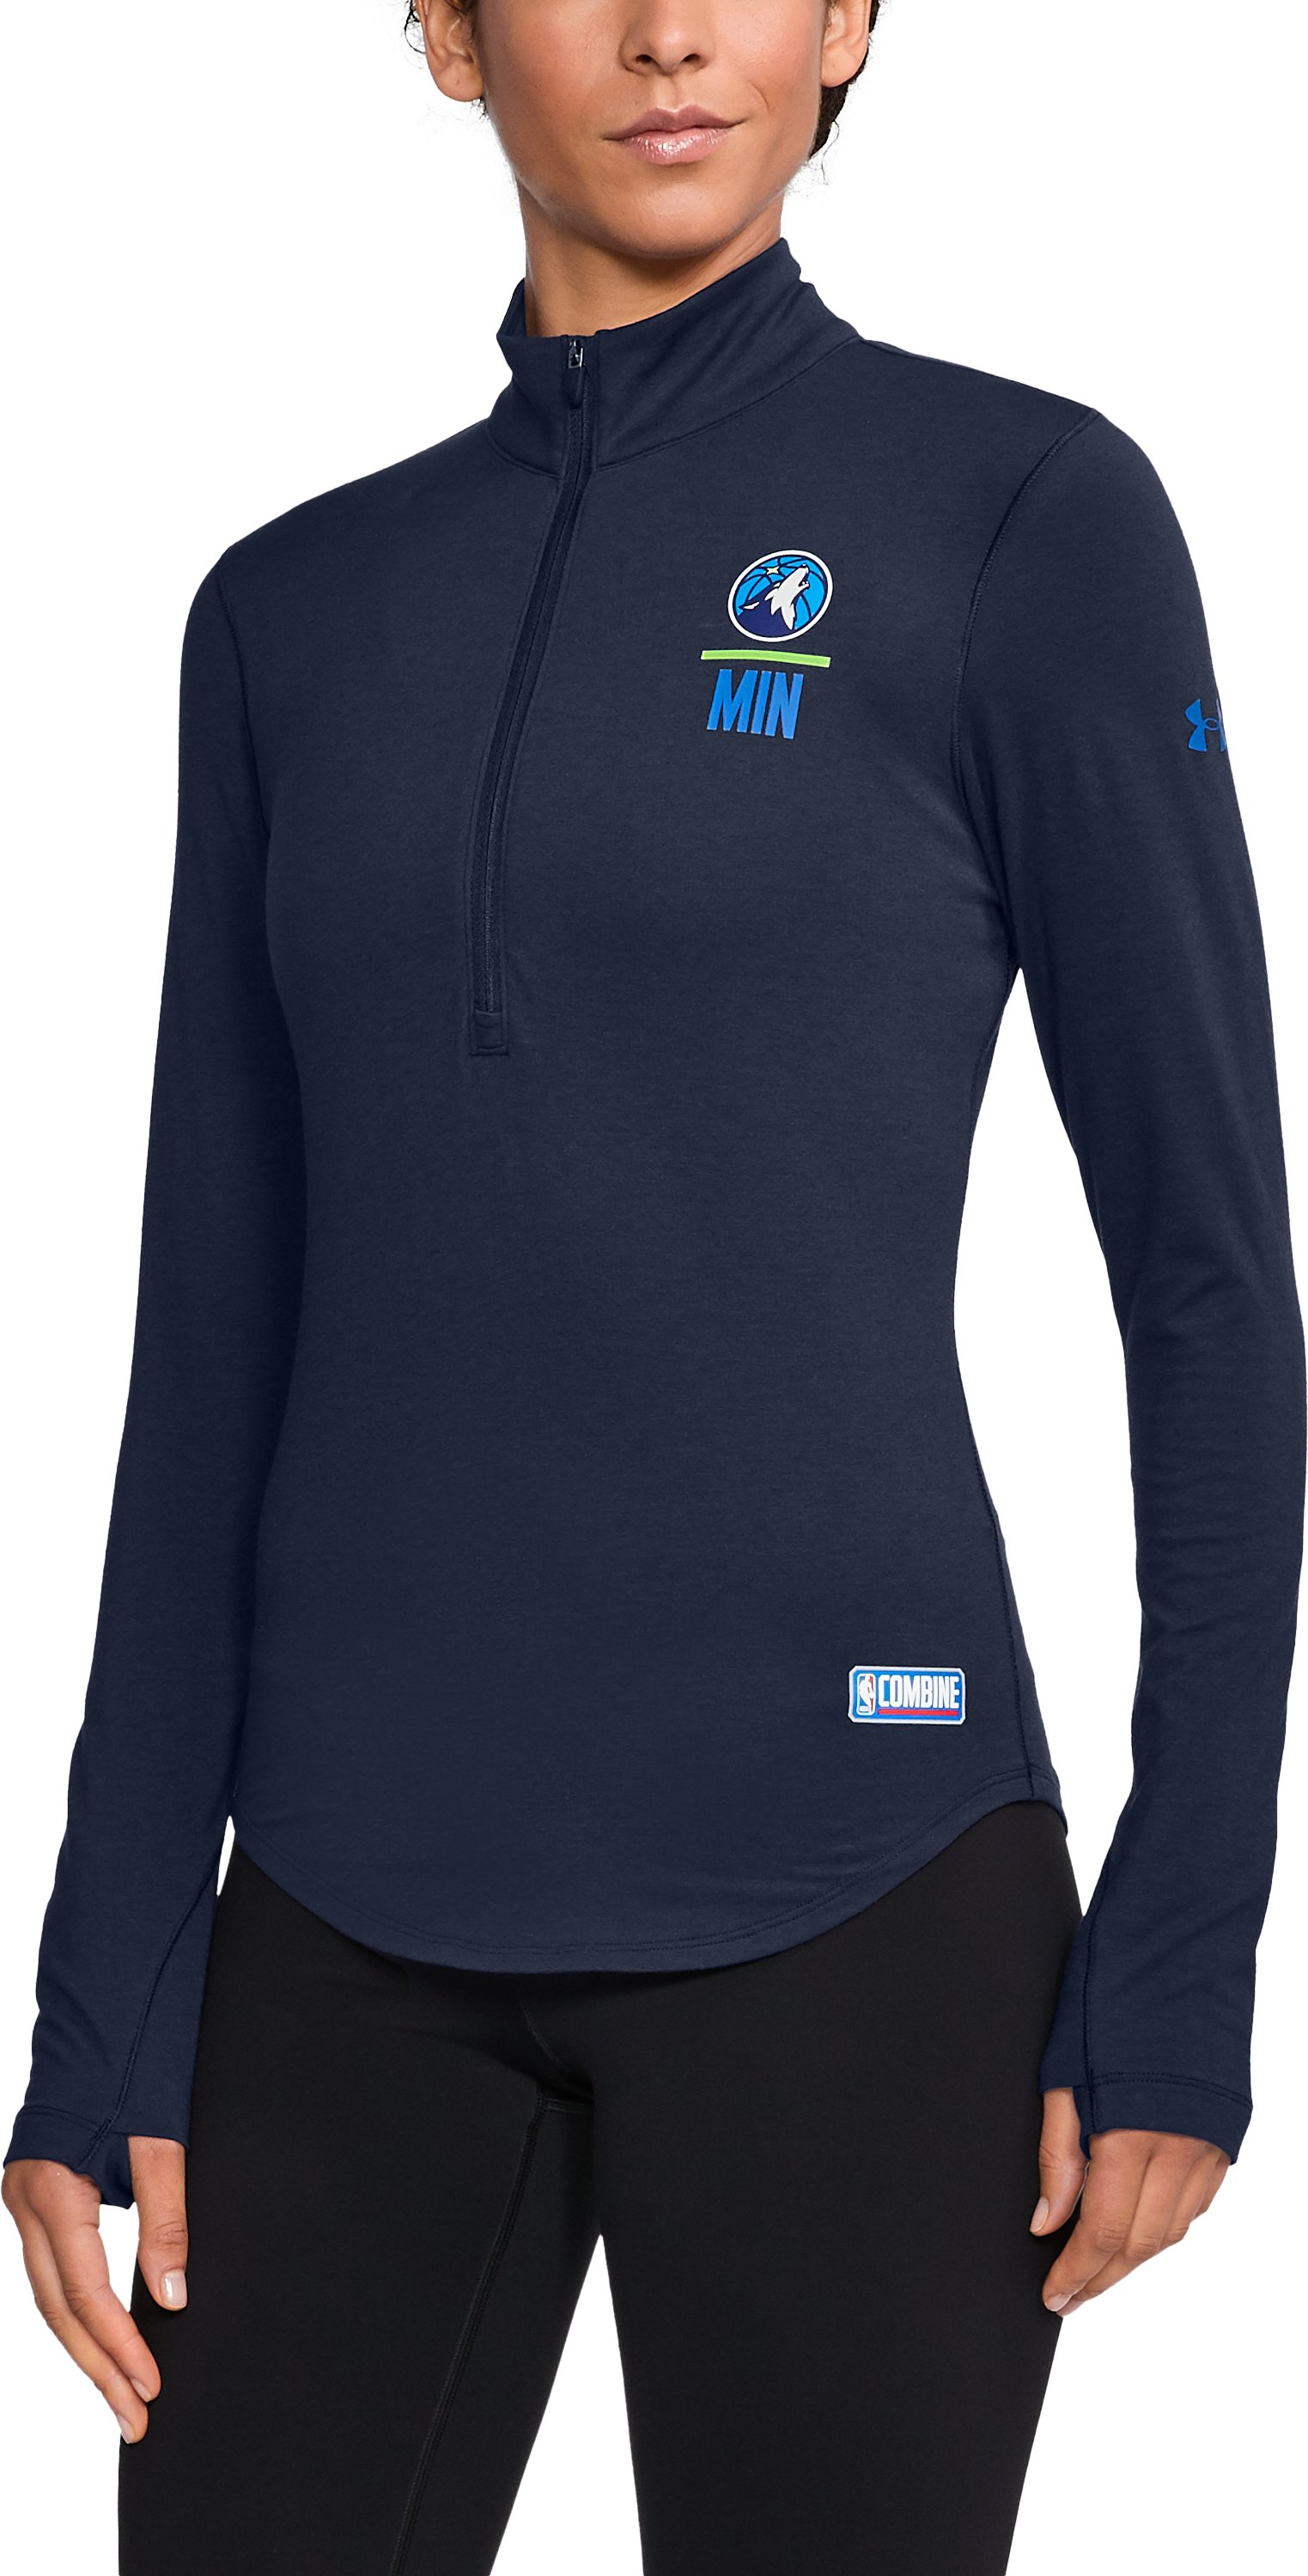 Women's NBA Combine Authentic Charged Cotton® 1/2 Zip, NBA_MINNESOTA TIMBERWOLVES_MIDNIGHT NAVY,